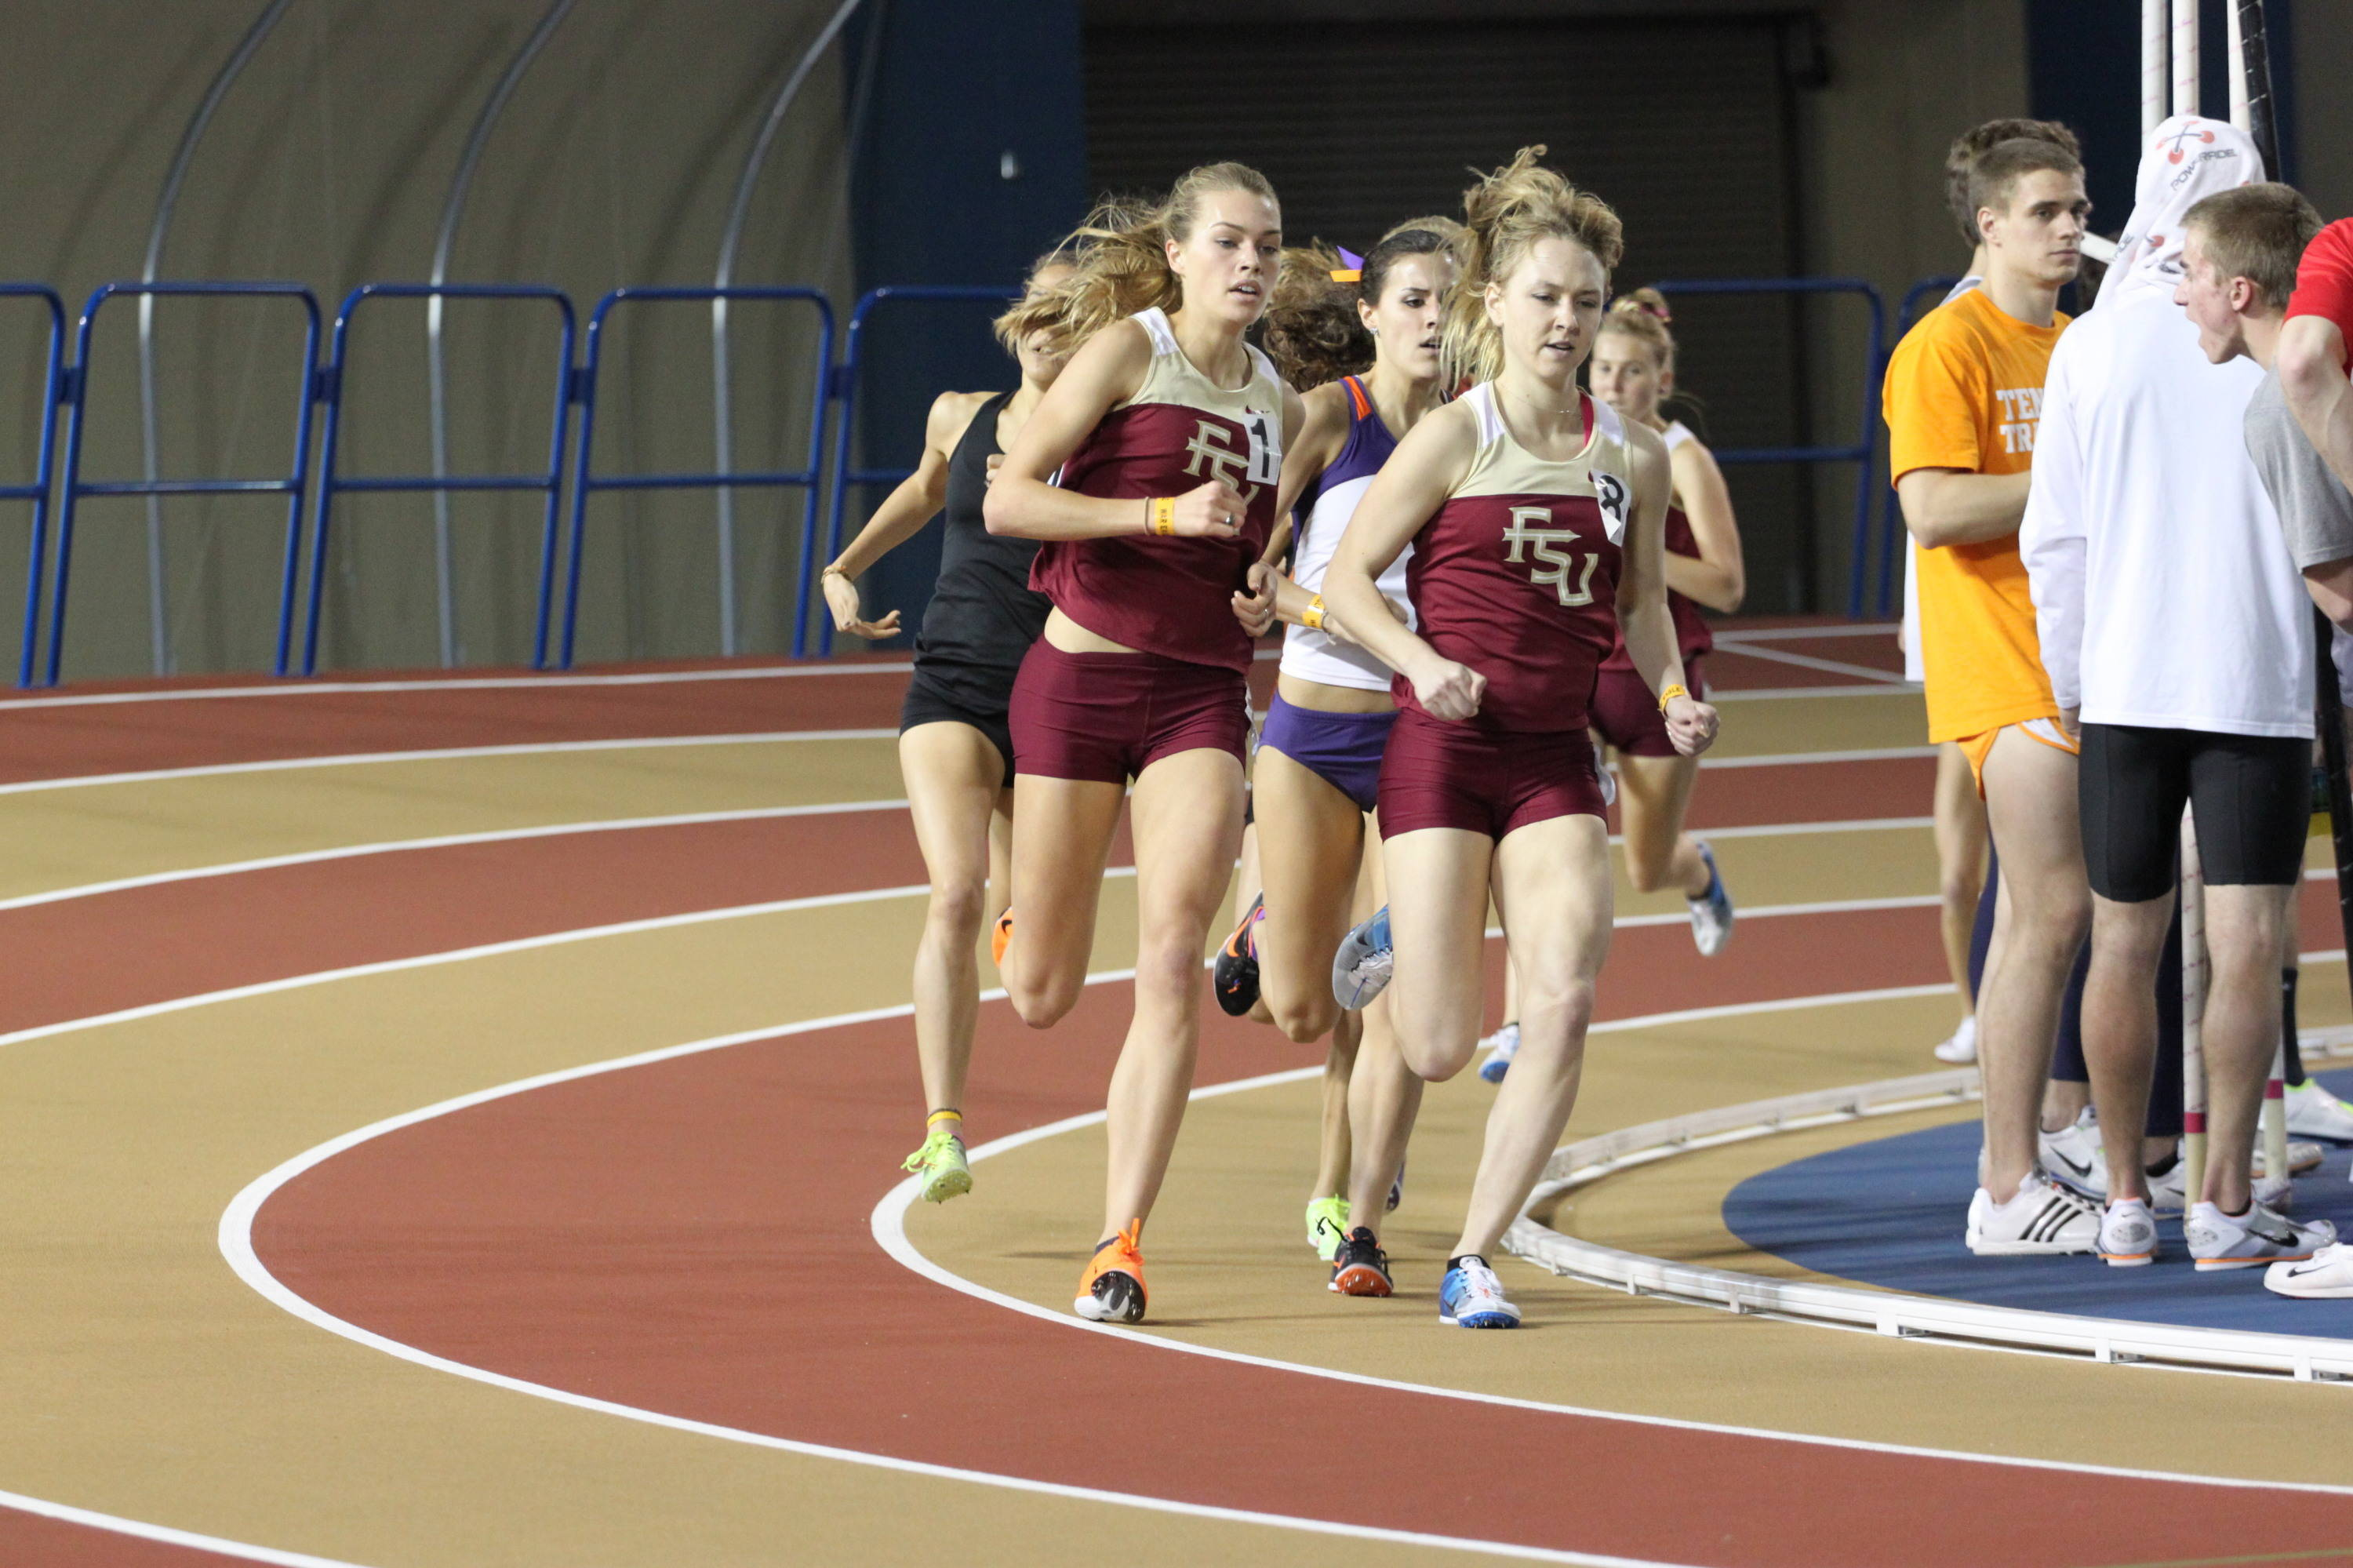 FSU freshman Colleen Quigley and Aubree Worden finished 1-2 in the mile run, posting personal best times of 4:47 and 4:49, respectively.